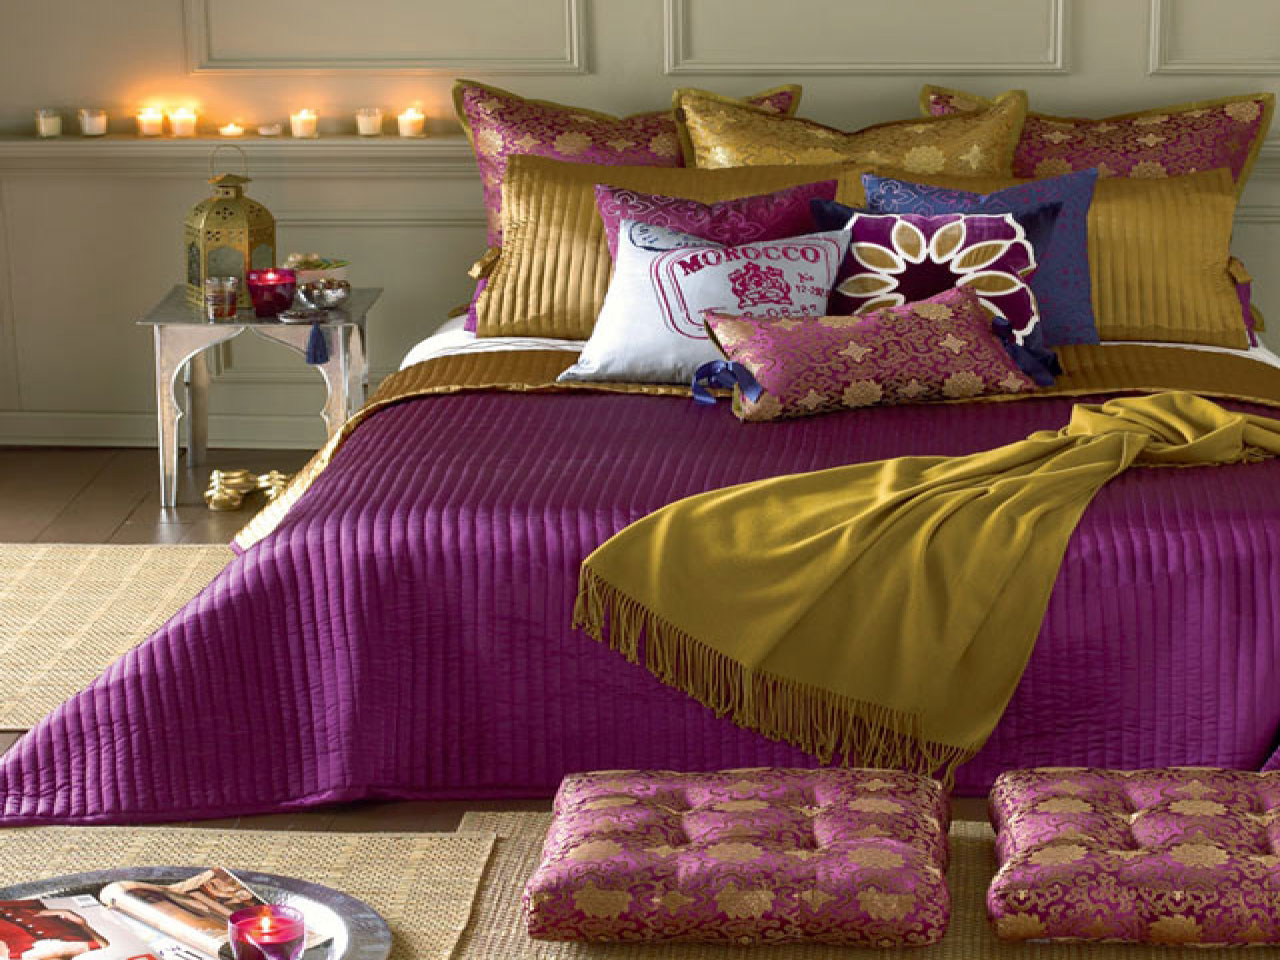 Bedroom Designs with White Purple Golden Pillow